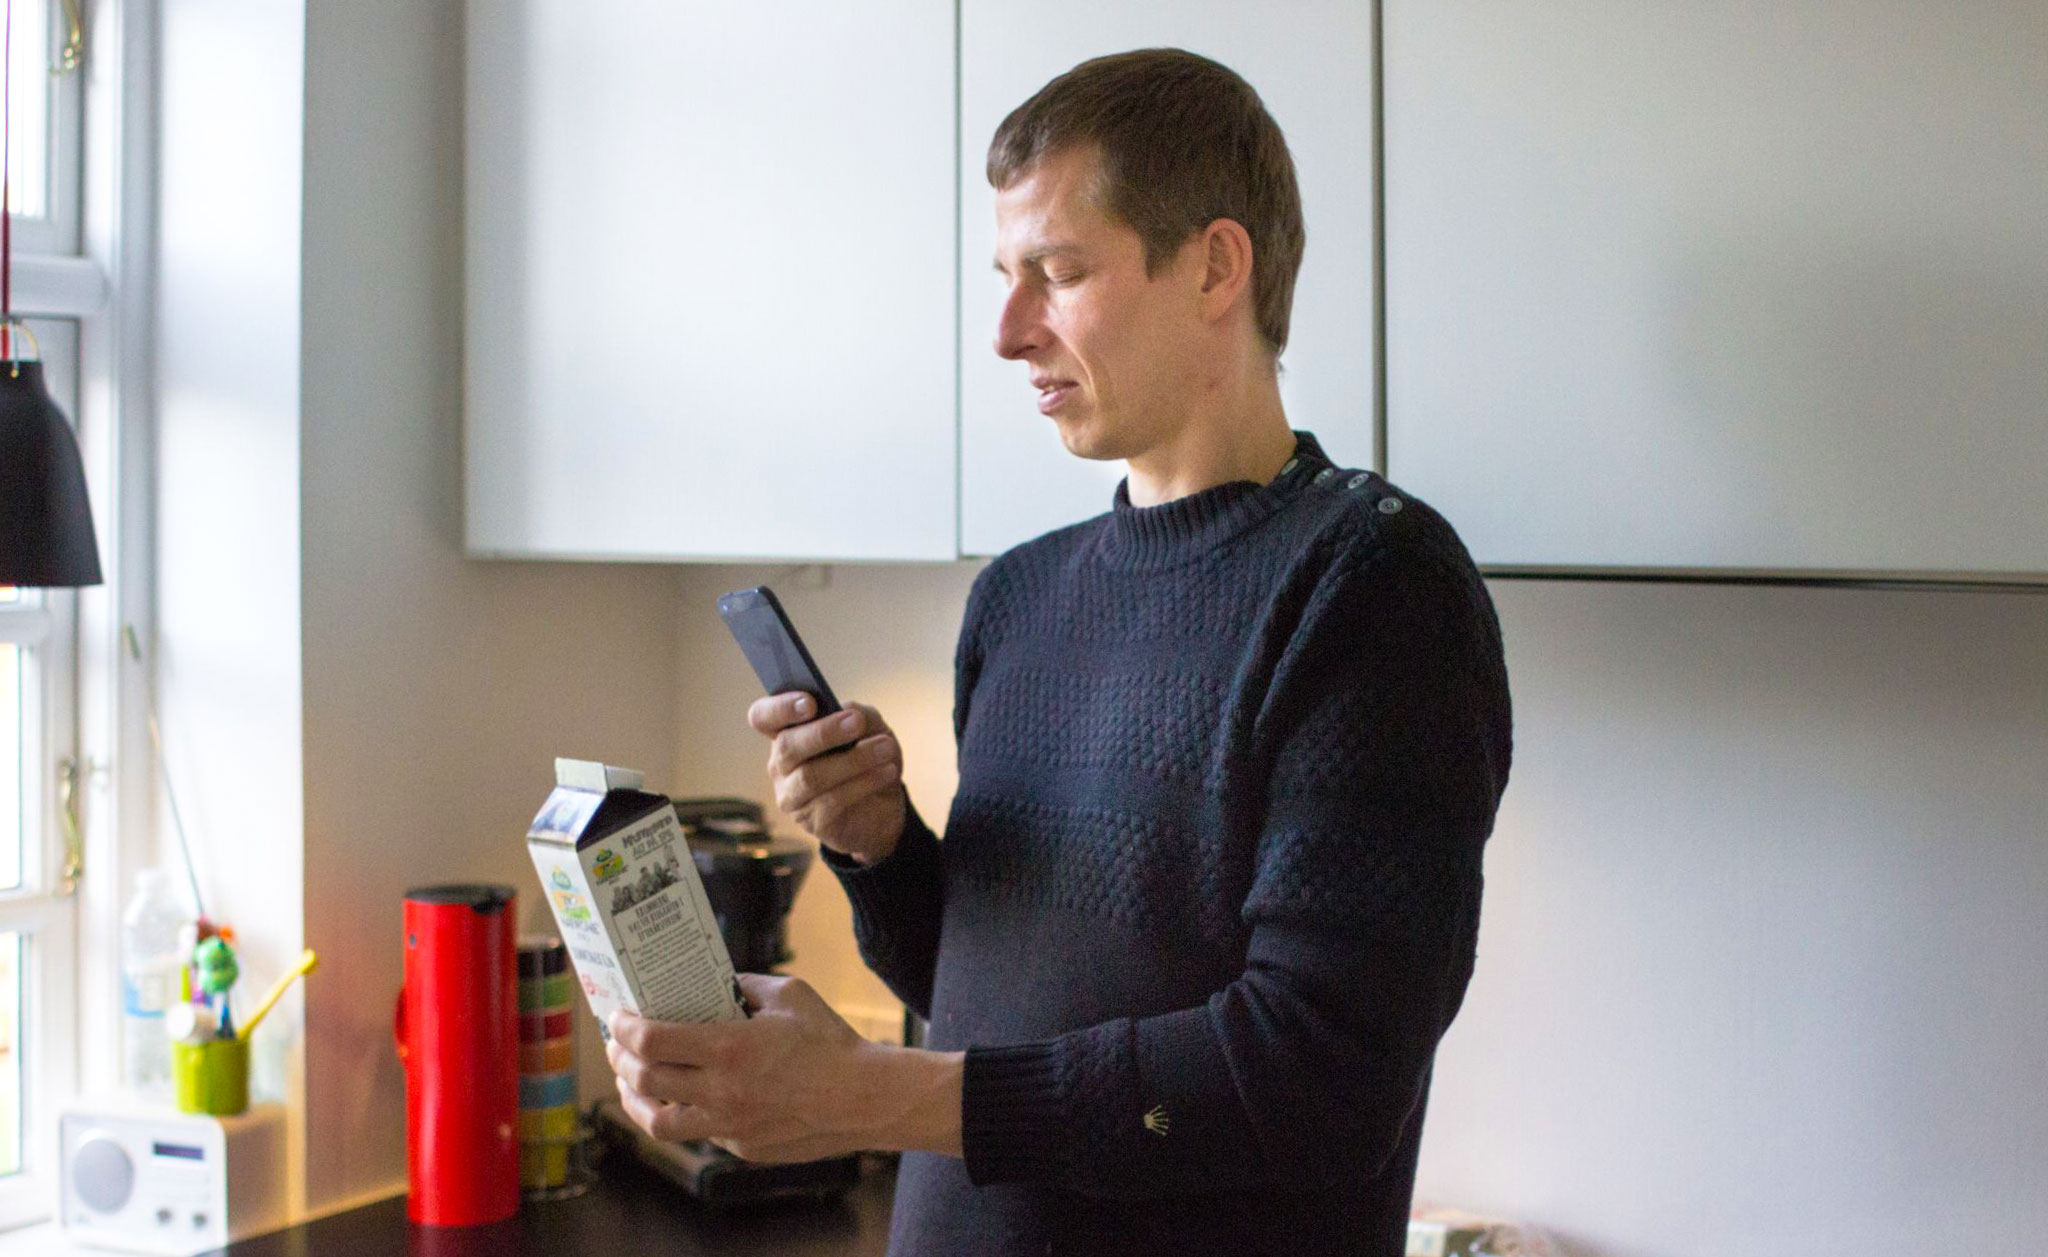 Image of a visually impaired user using the Be My Eyes App to check the expiration date of an item